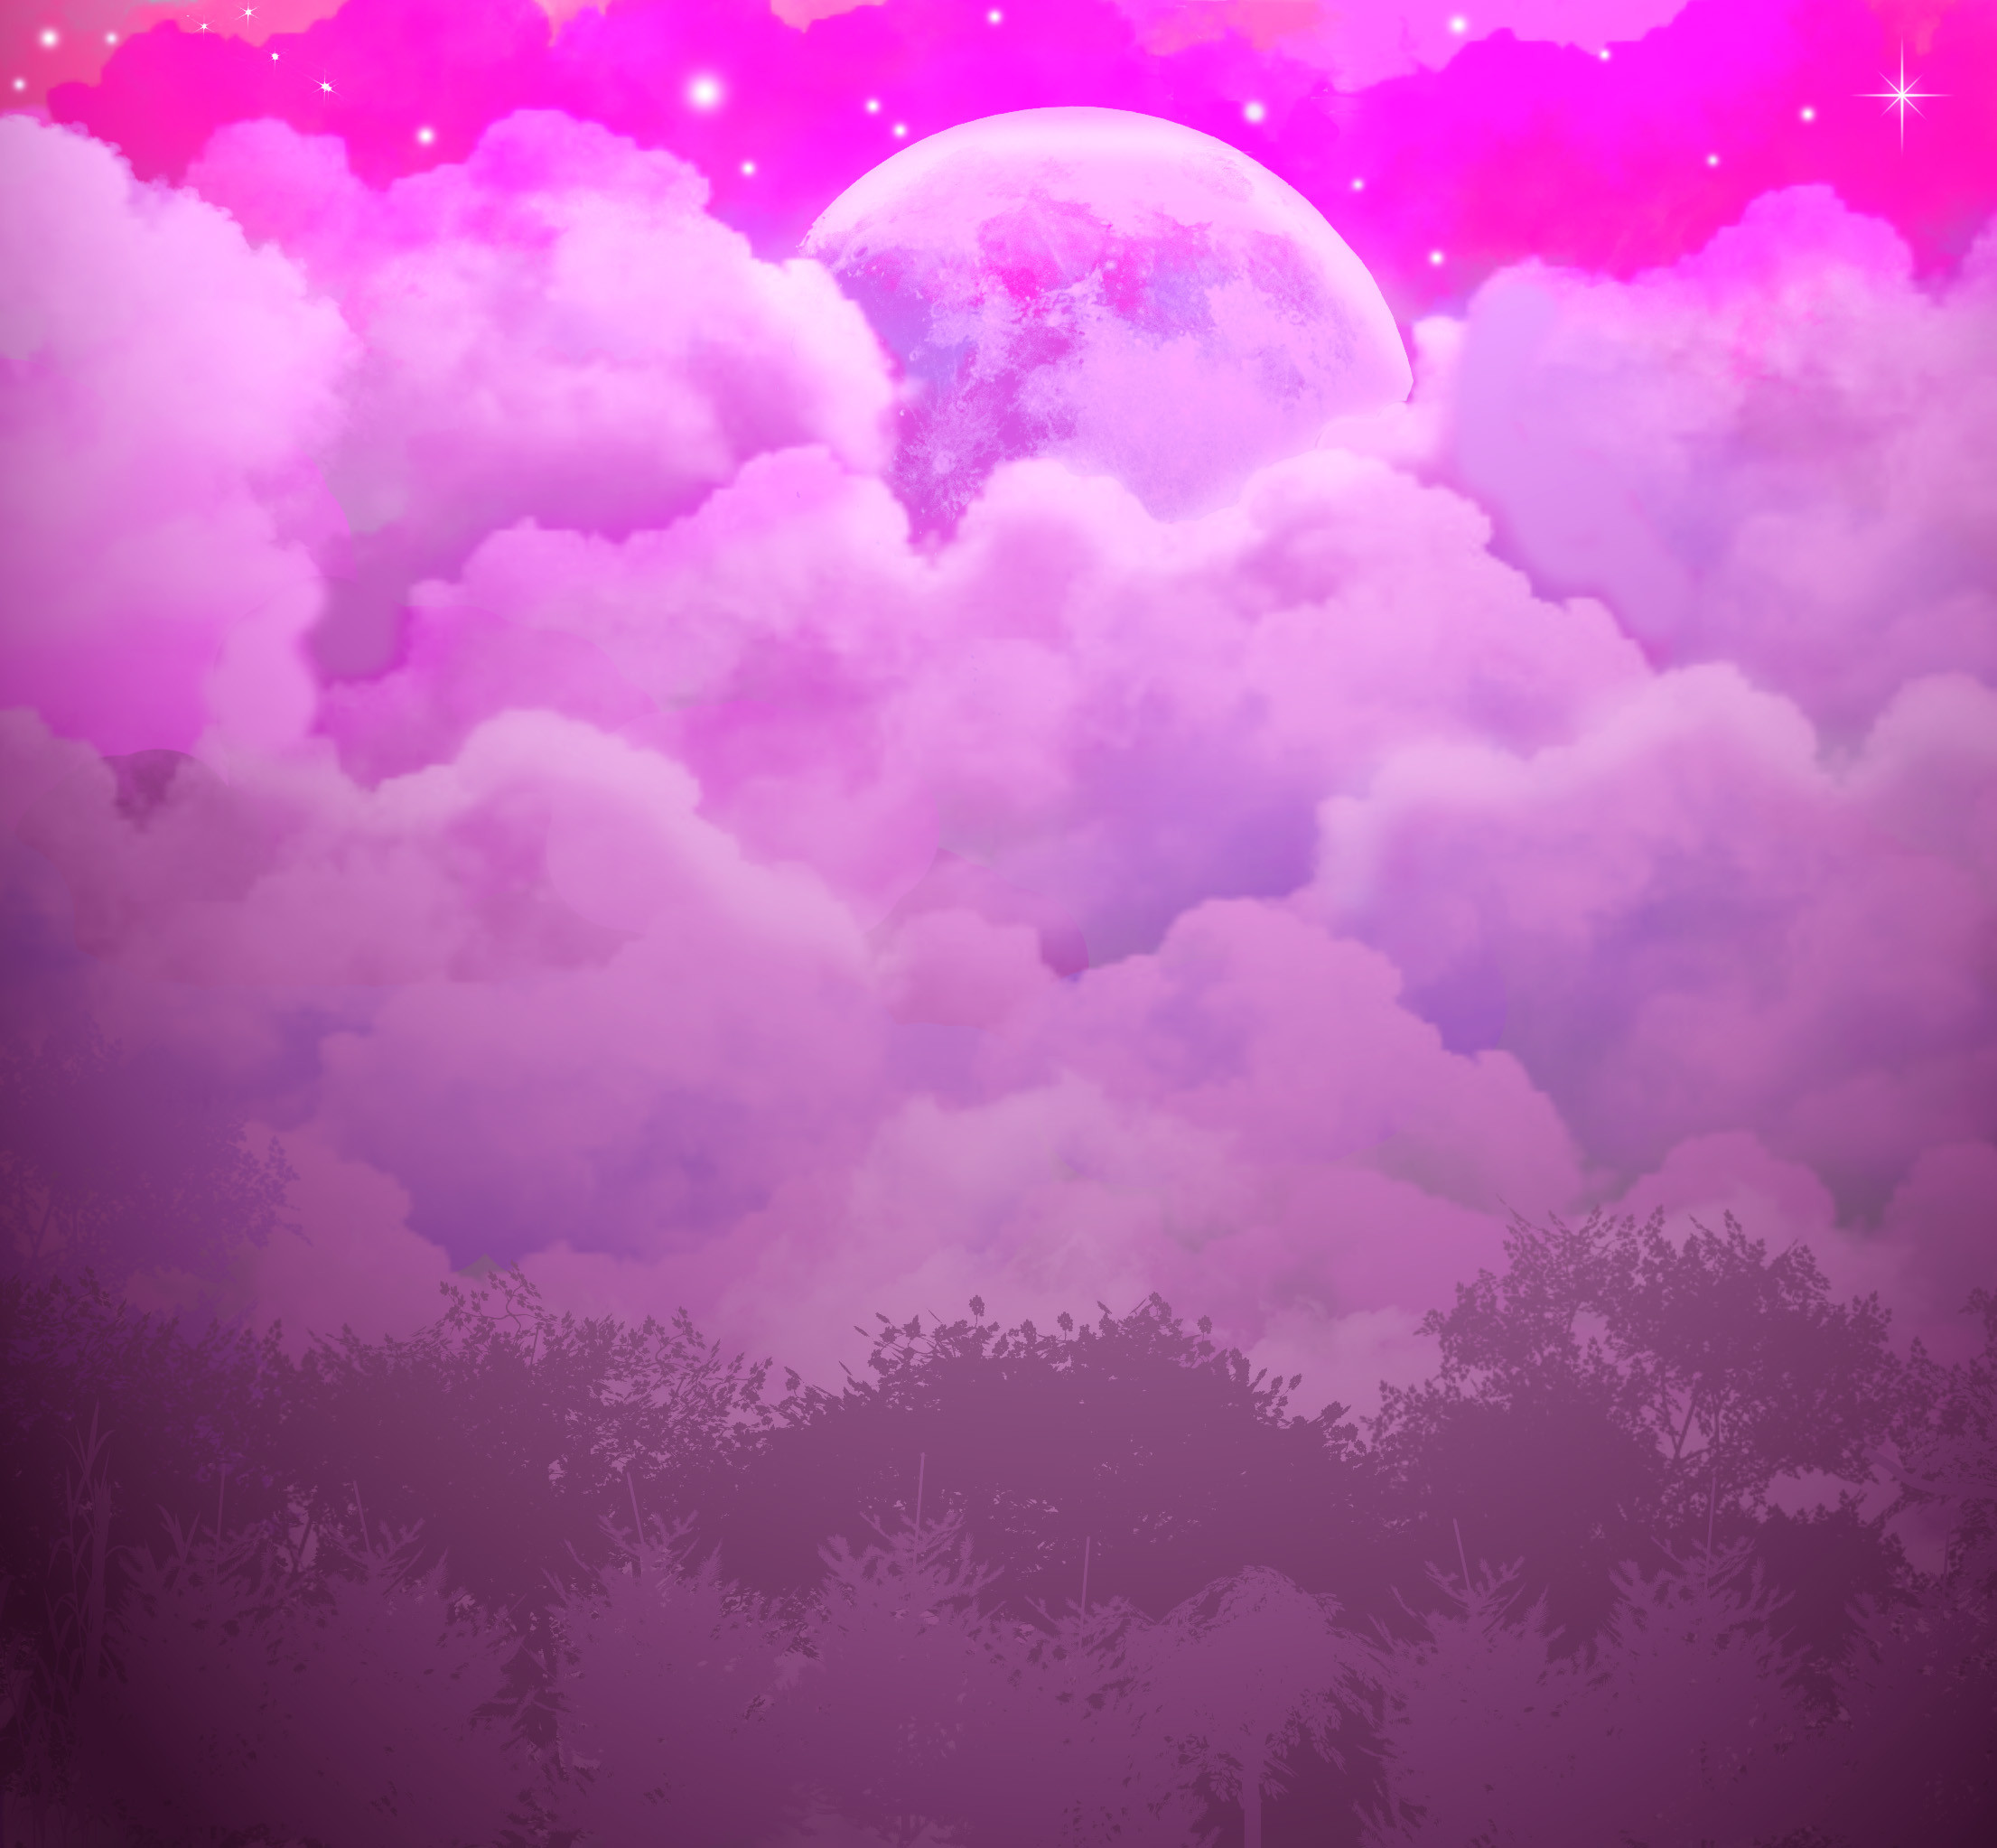 2211x2046 Anime Style Night Background by FireSnake666 Anime Style Night Background  by FireSnake666